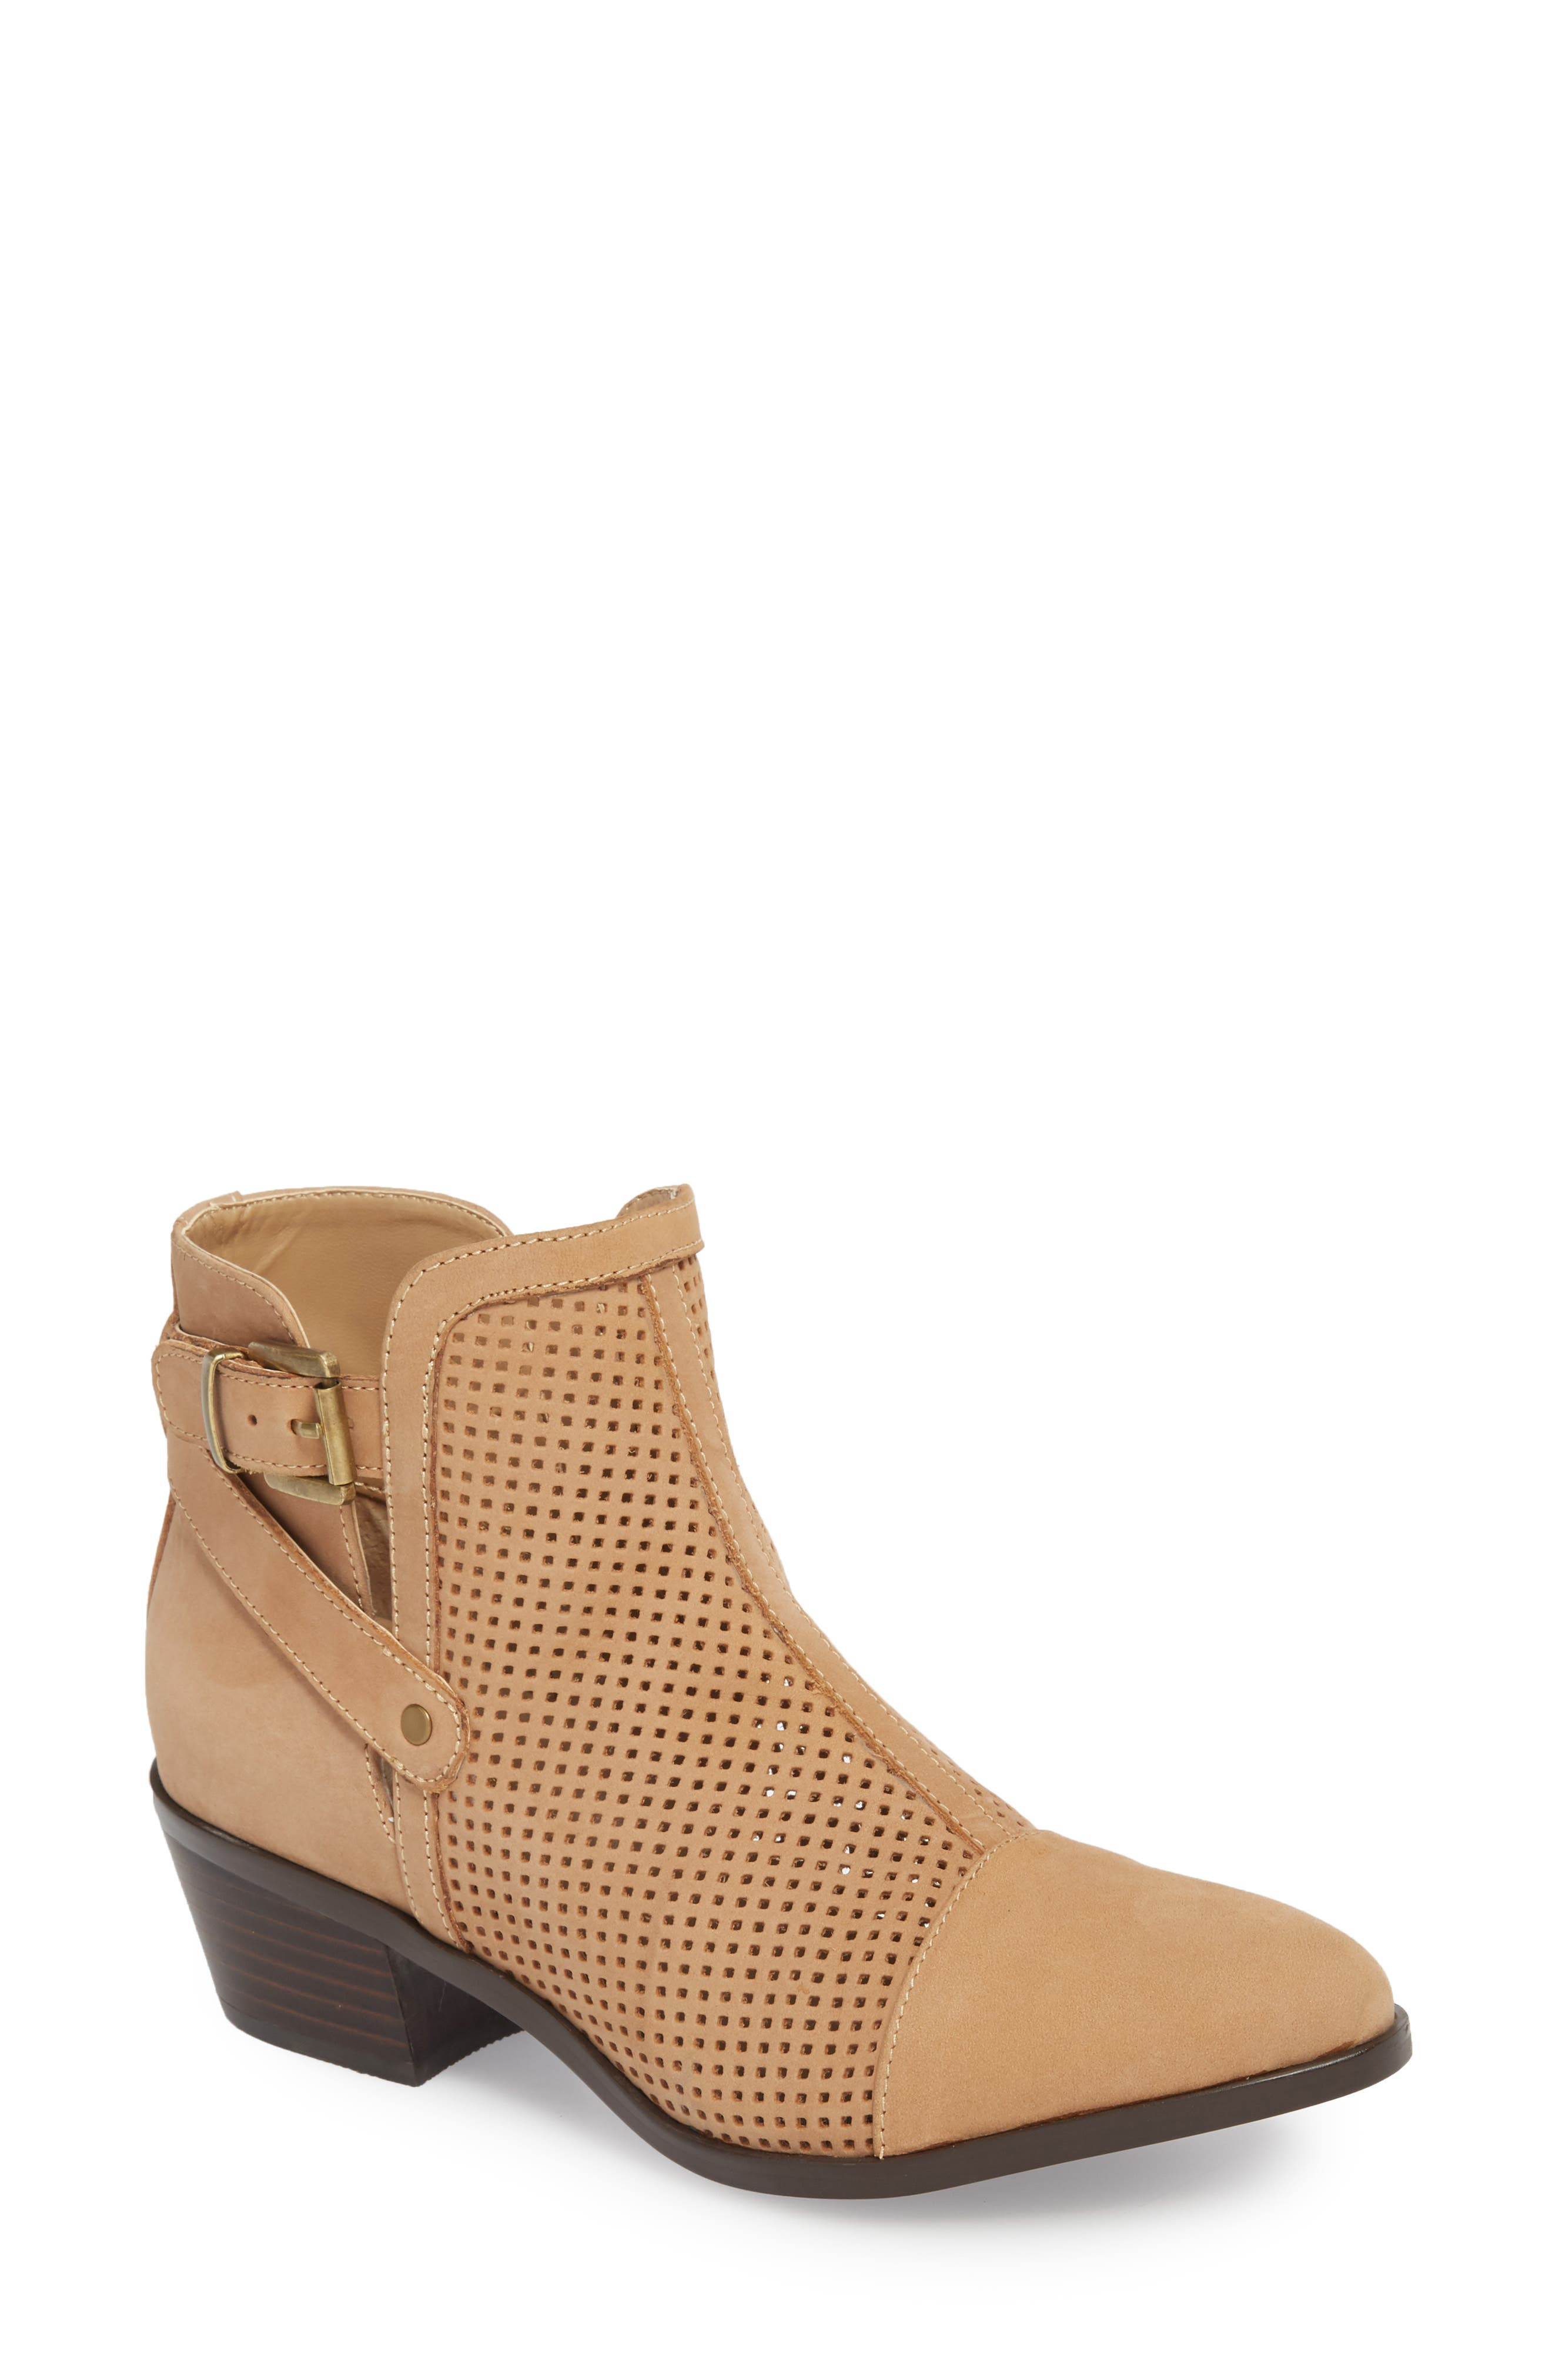 Prize Bootie,                             Main thumbnail 1, color,                             Taupe Nubuck